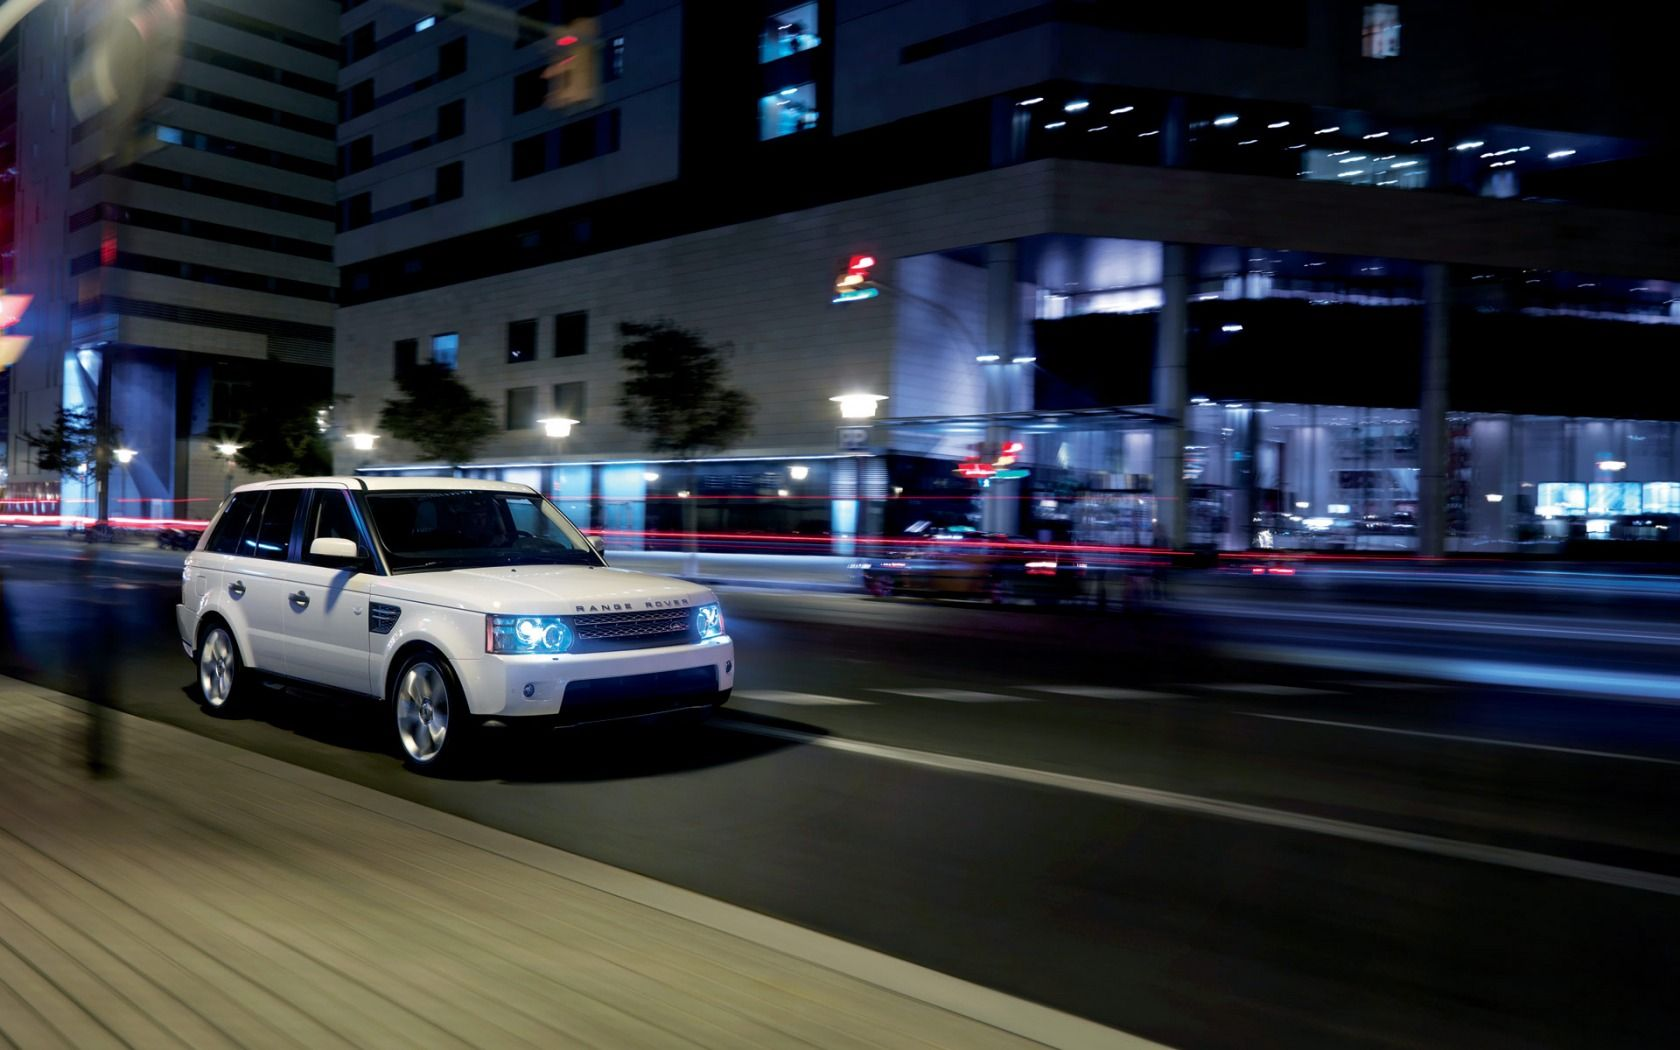 Pimped range rover sport wallpaper range rover cars wallpapers for pimped range rover sport wallpaper range rover cars wallpapers for voltagebd Image collections